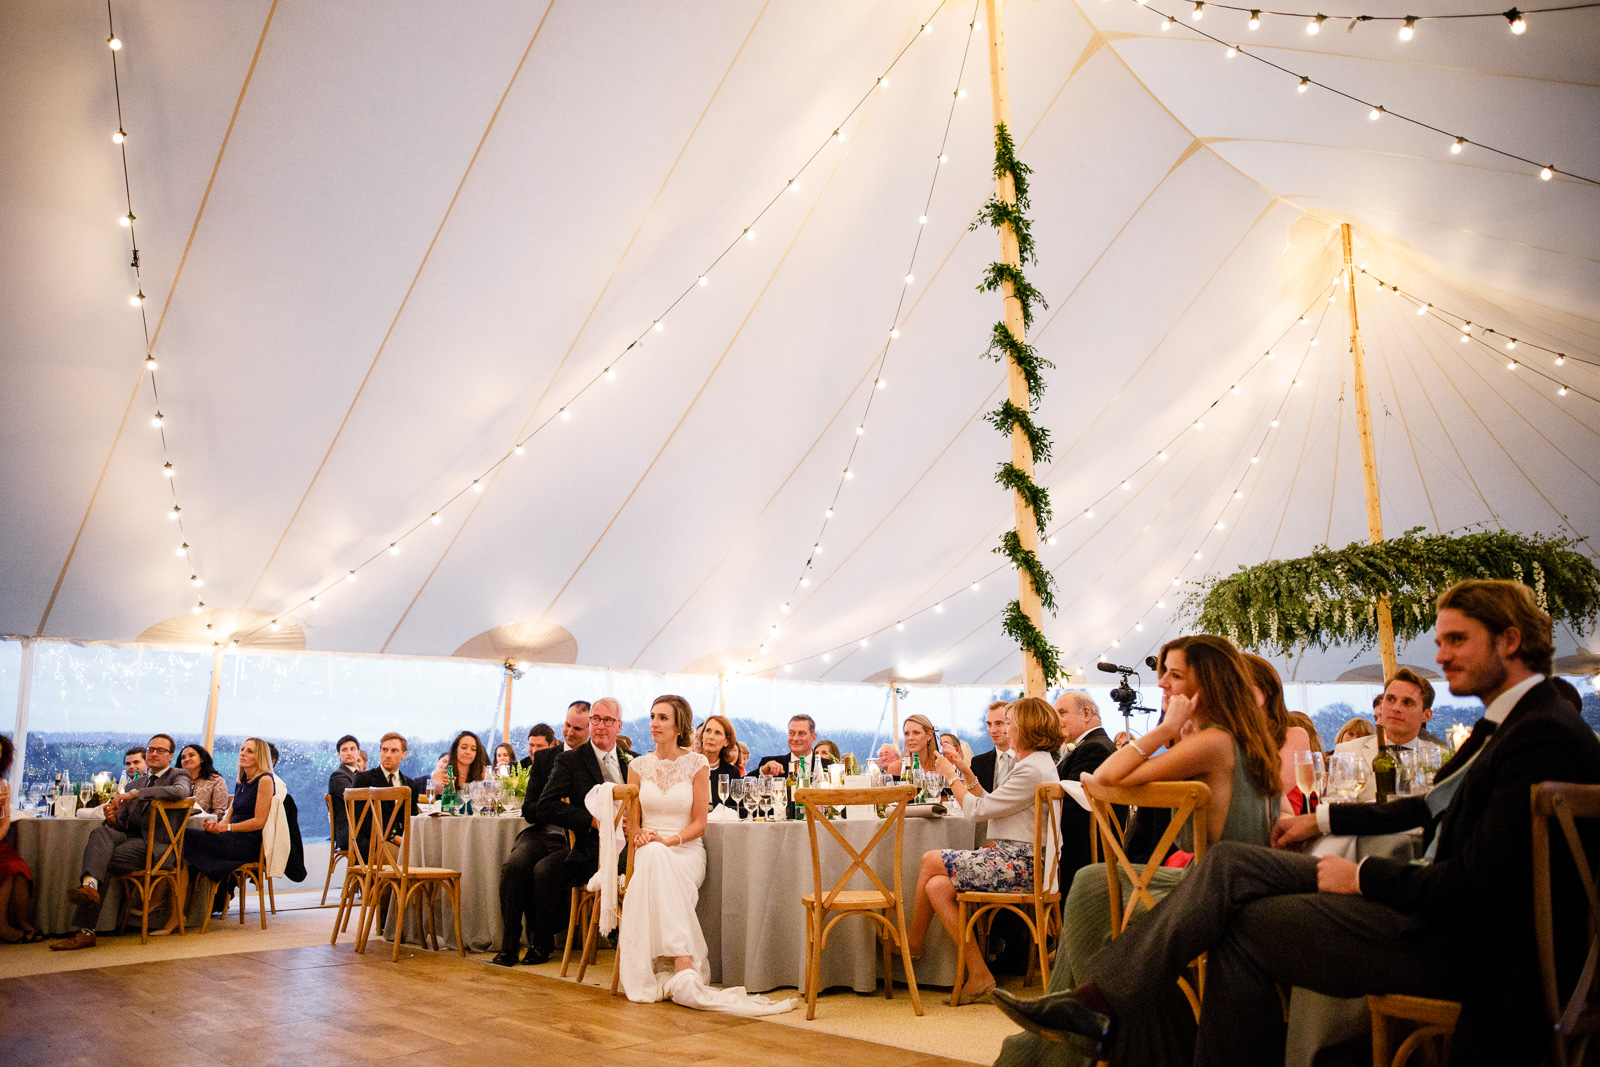 Emily & Ed's PapaKåta Sperry Tent wedding at Buckhurst Park captured by Tony Hart Photography: Sperry Tent interior